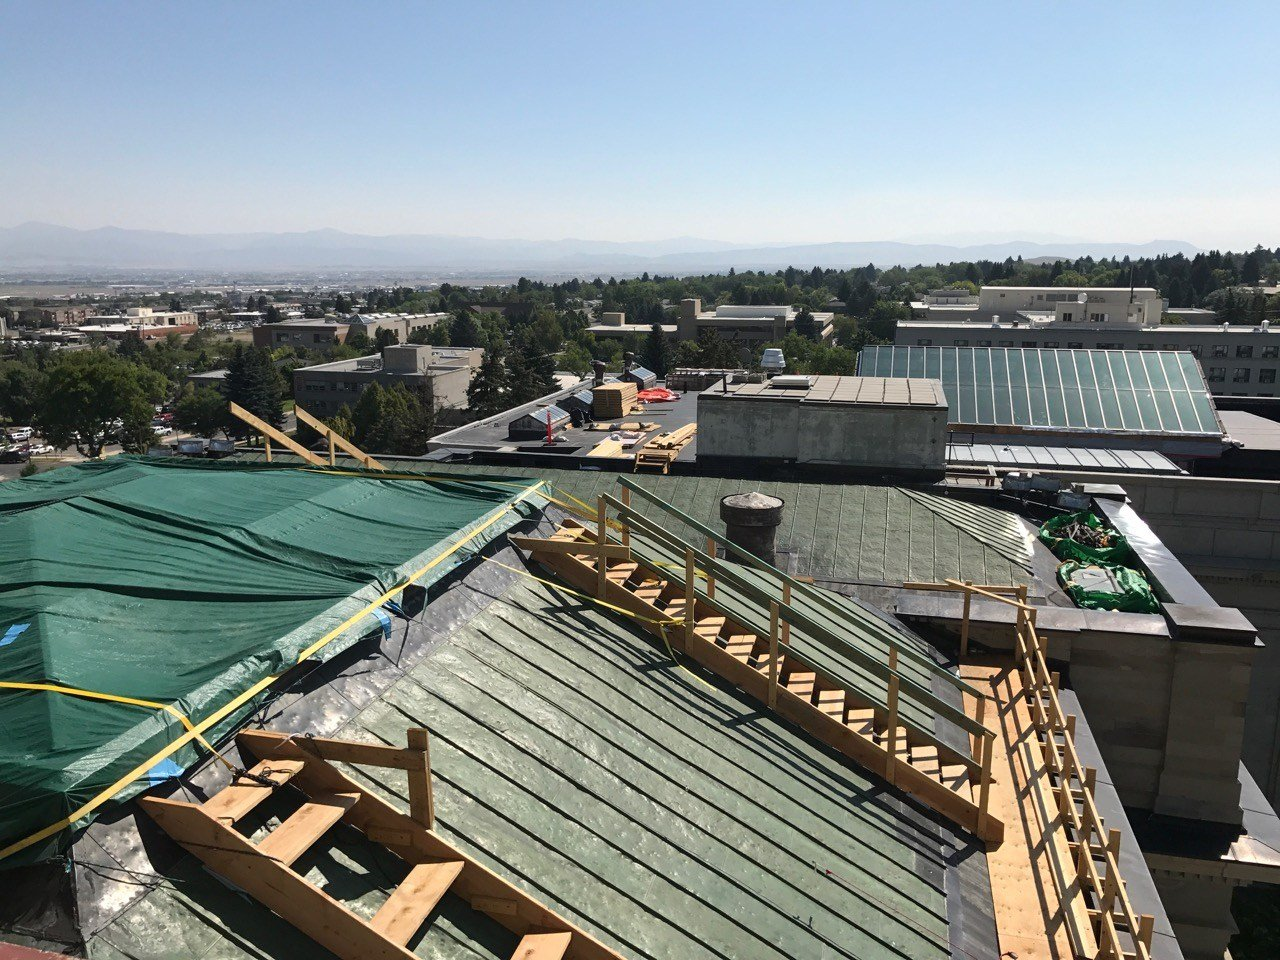 Workers have been busy this summer replacing some of theoriginal skylights on Montana's State Capitol. (MTN News photo)